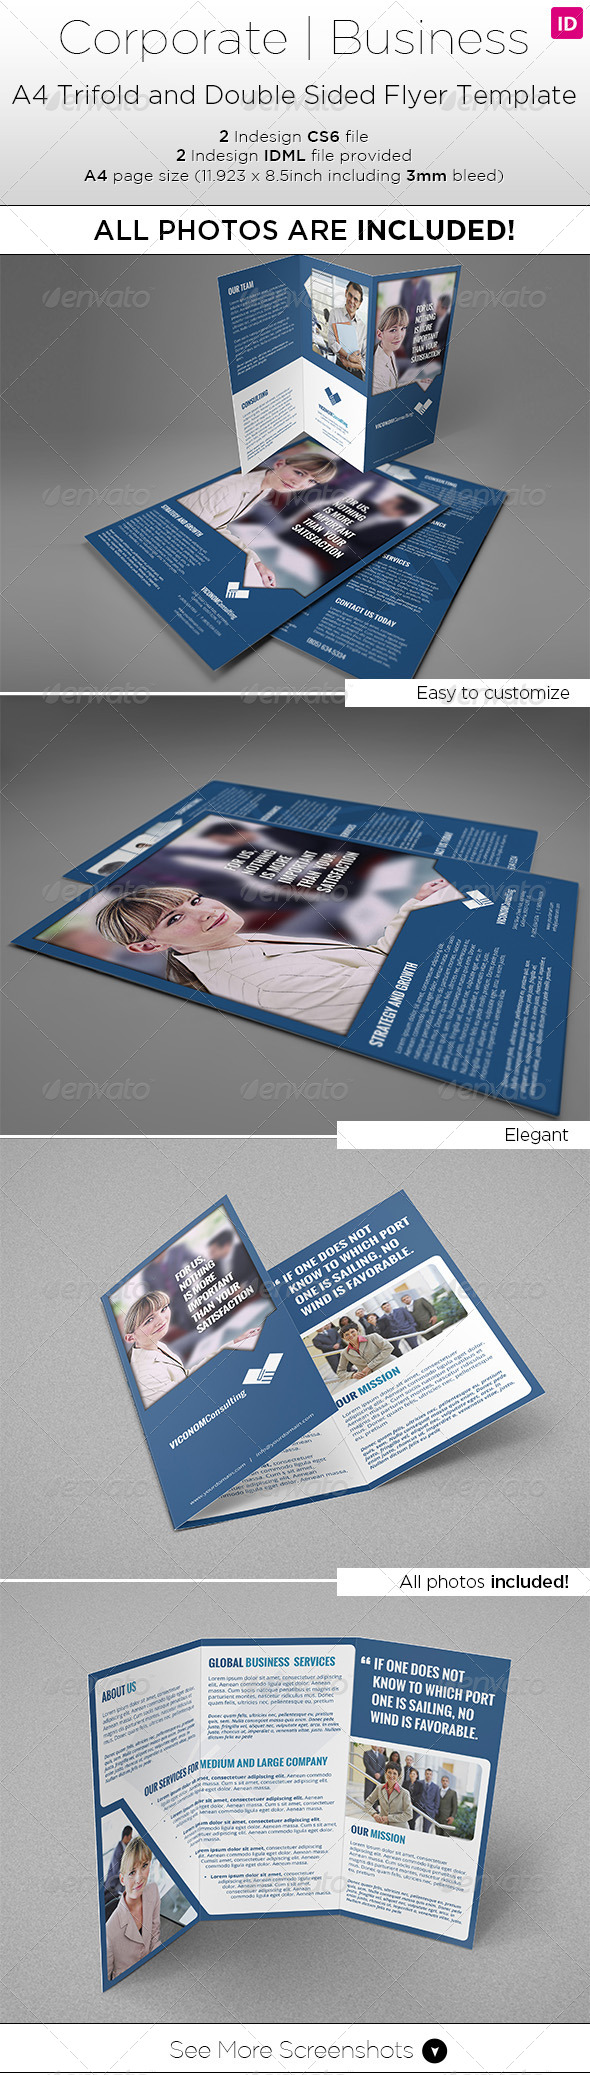 Double Sided Flyer Graphics Designs